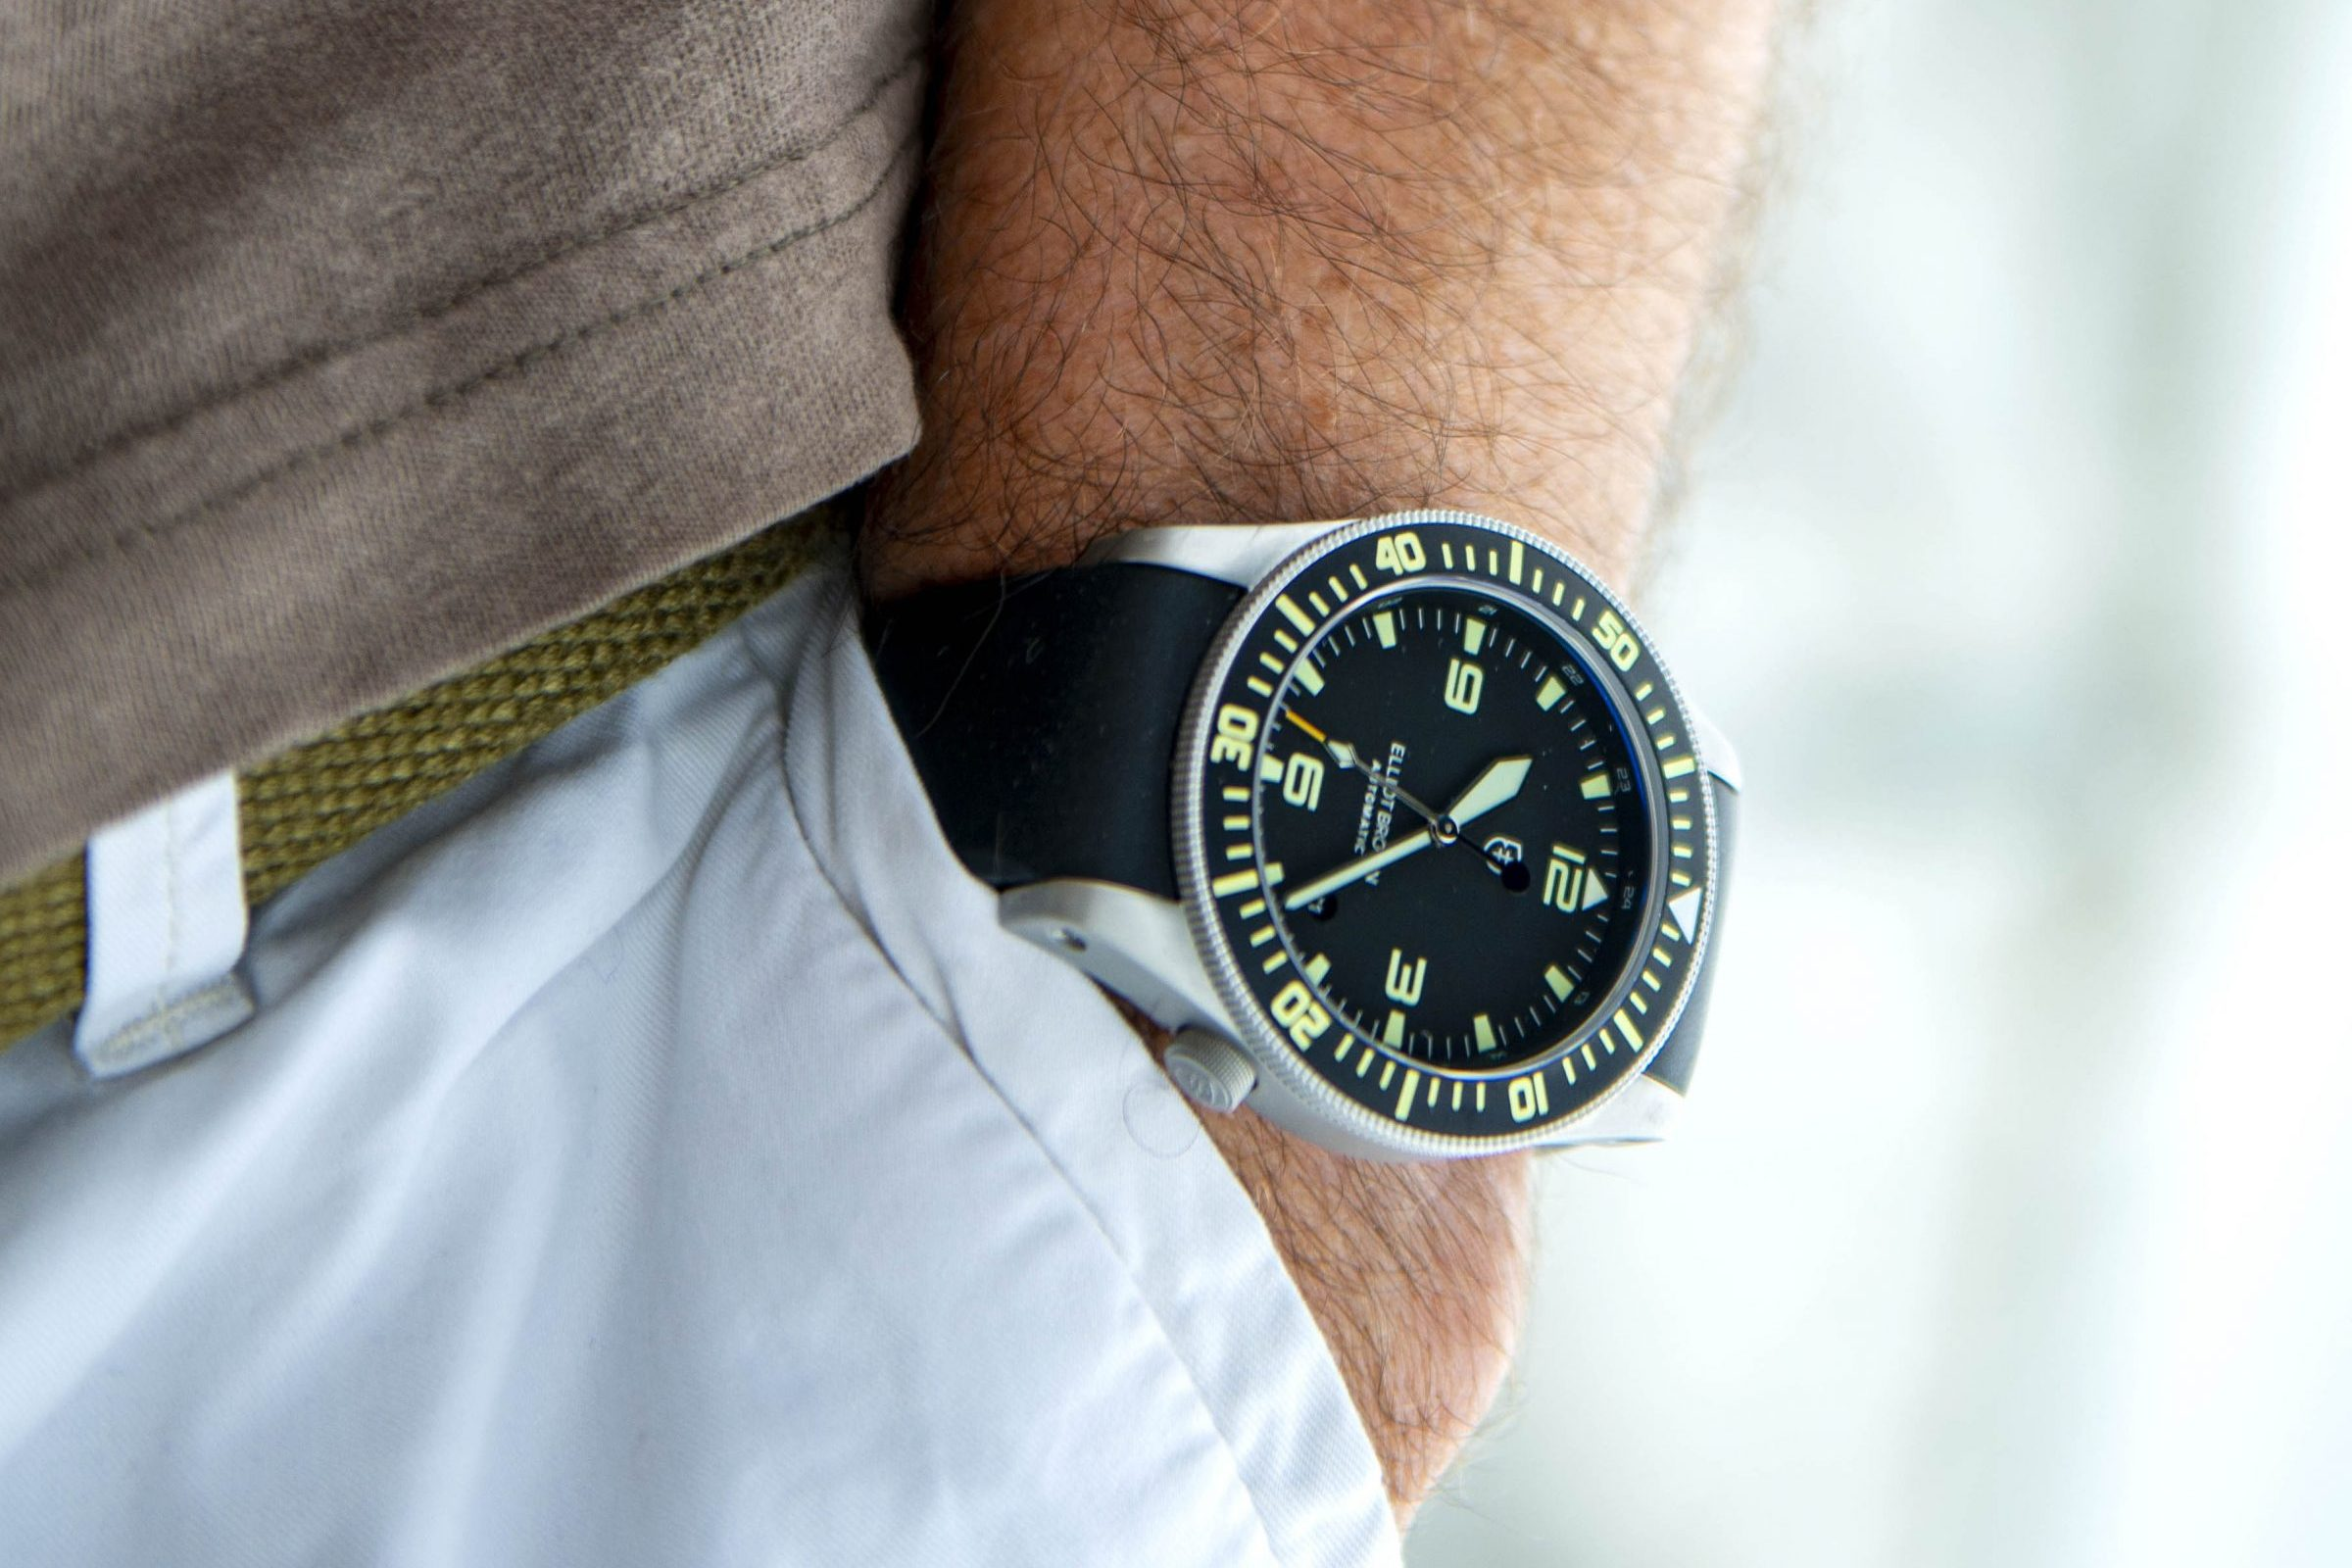 New watch from Elliot Brown – the Holton Automatic